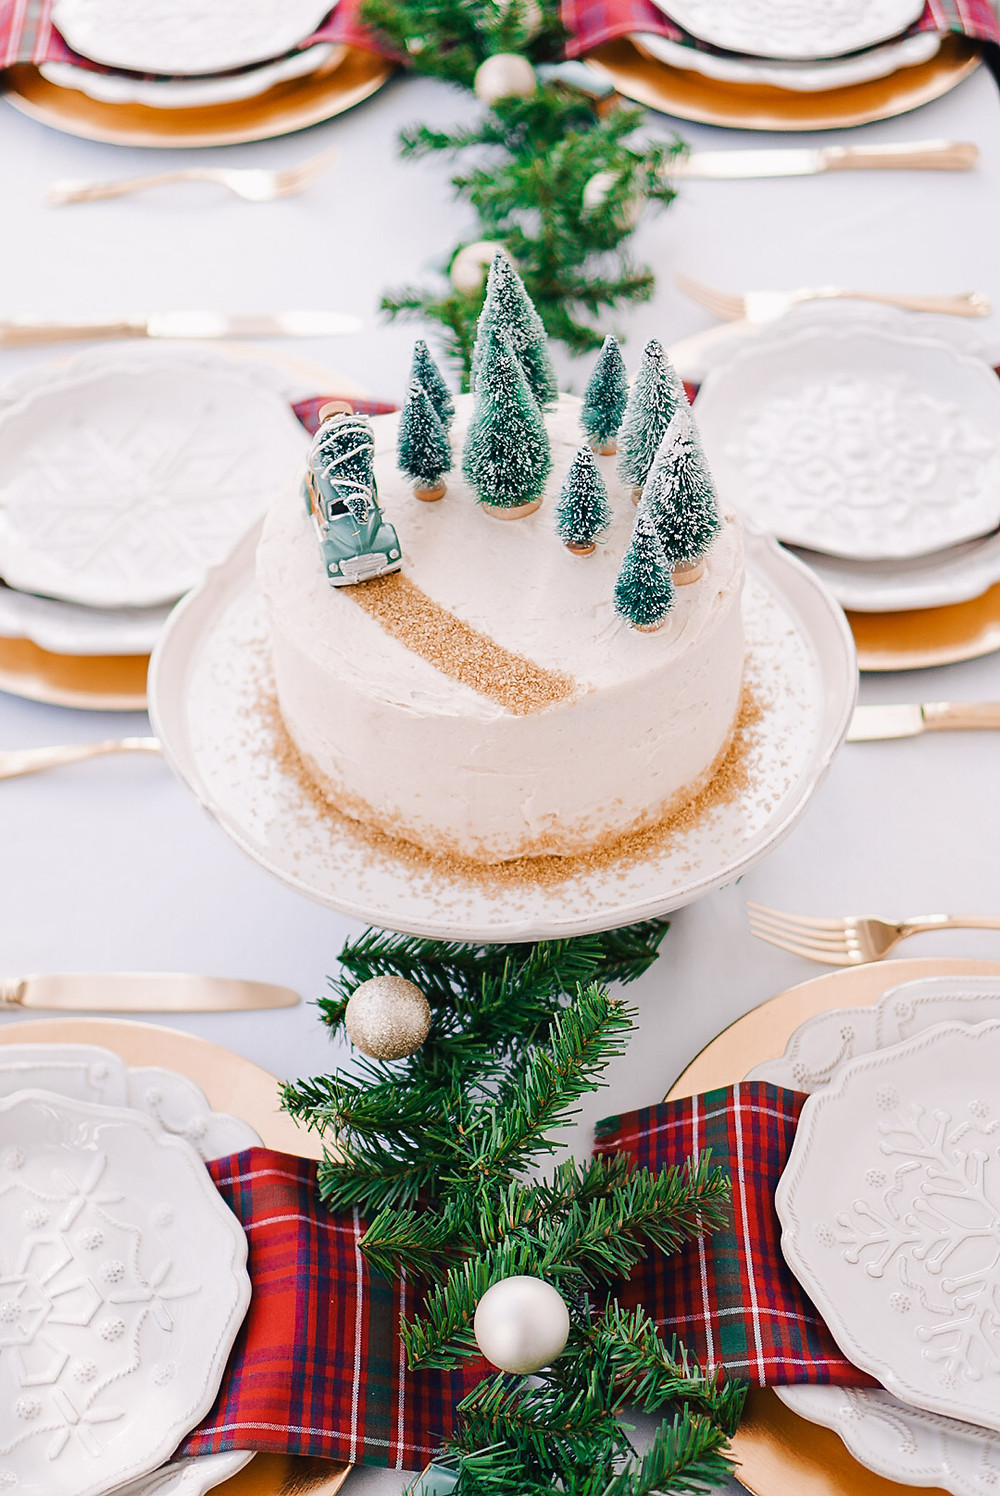 A fun and festive Christmas holiday tablescape with red and green plaid napkins, greenery and bottlebrush trees on a white table.